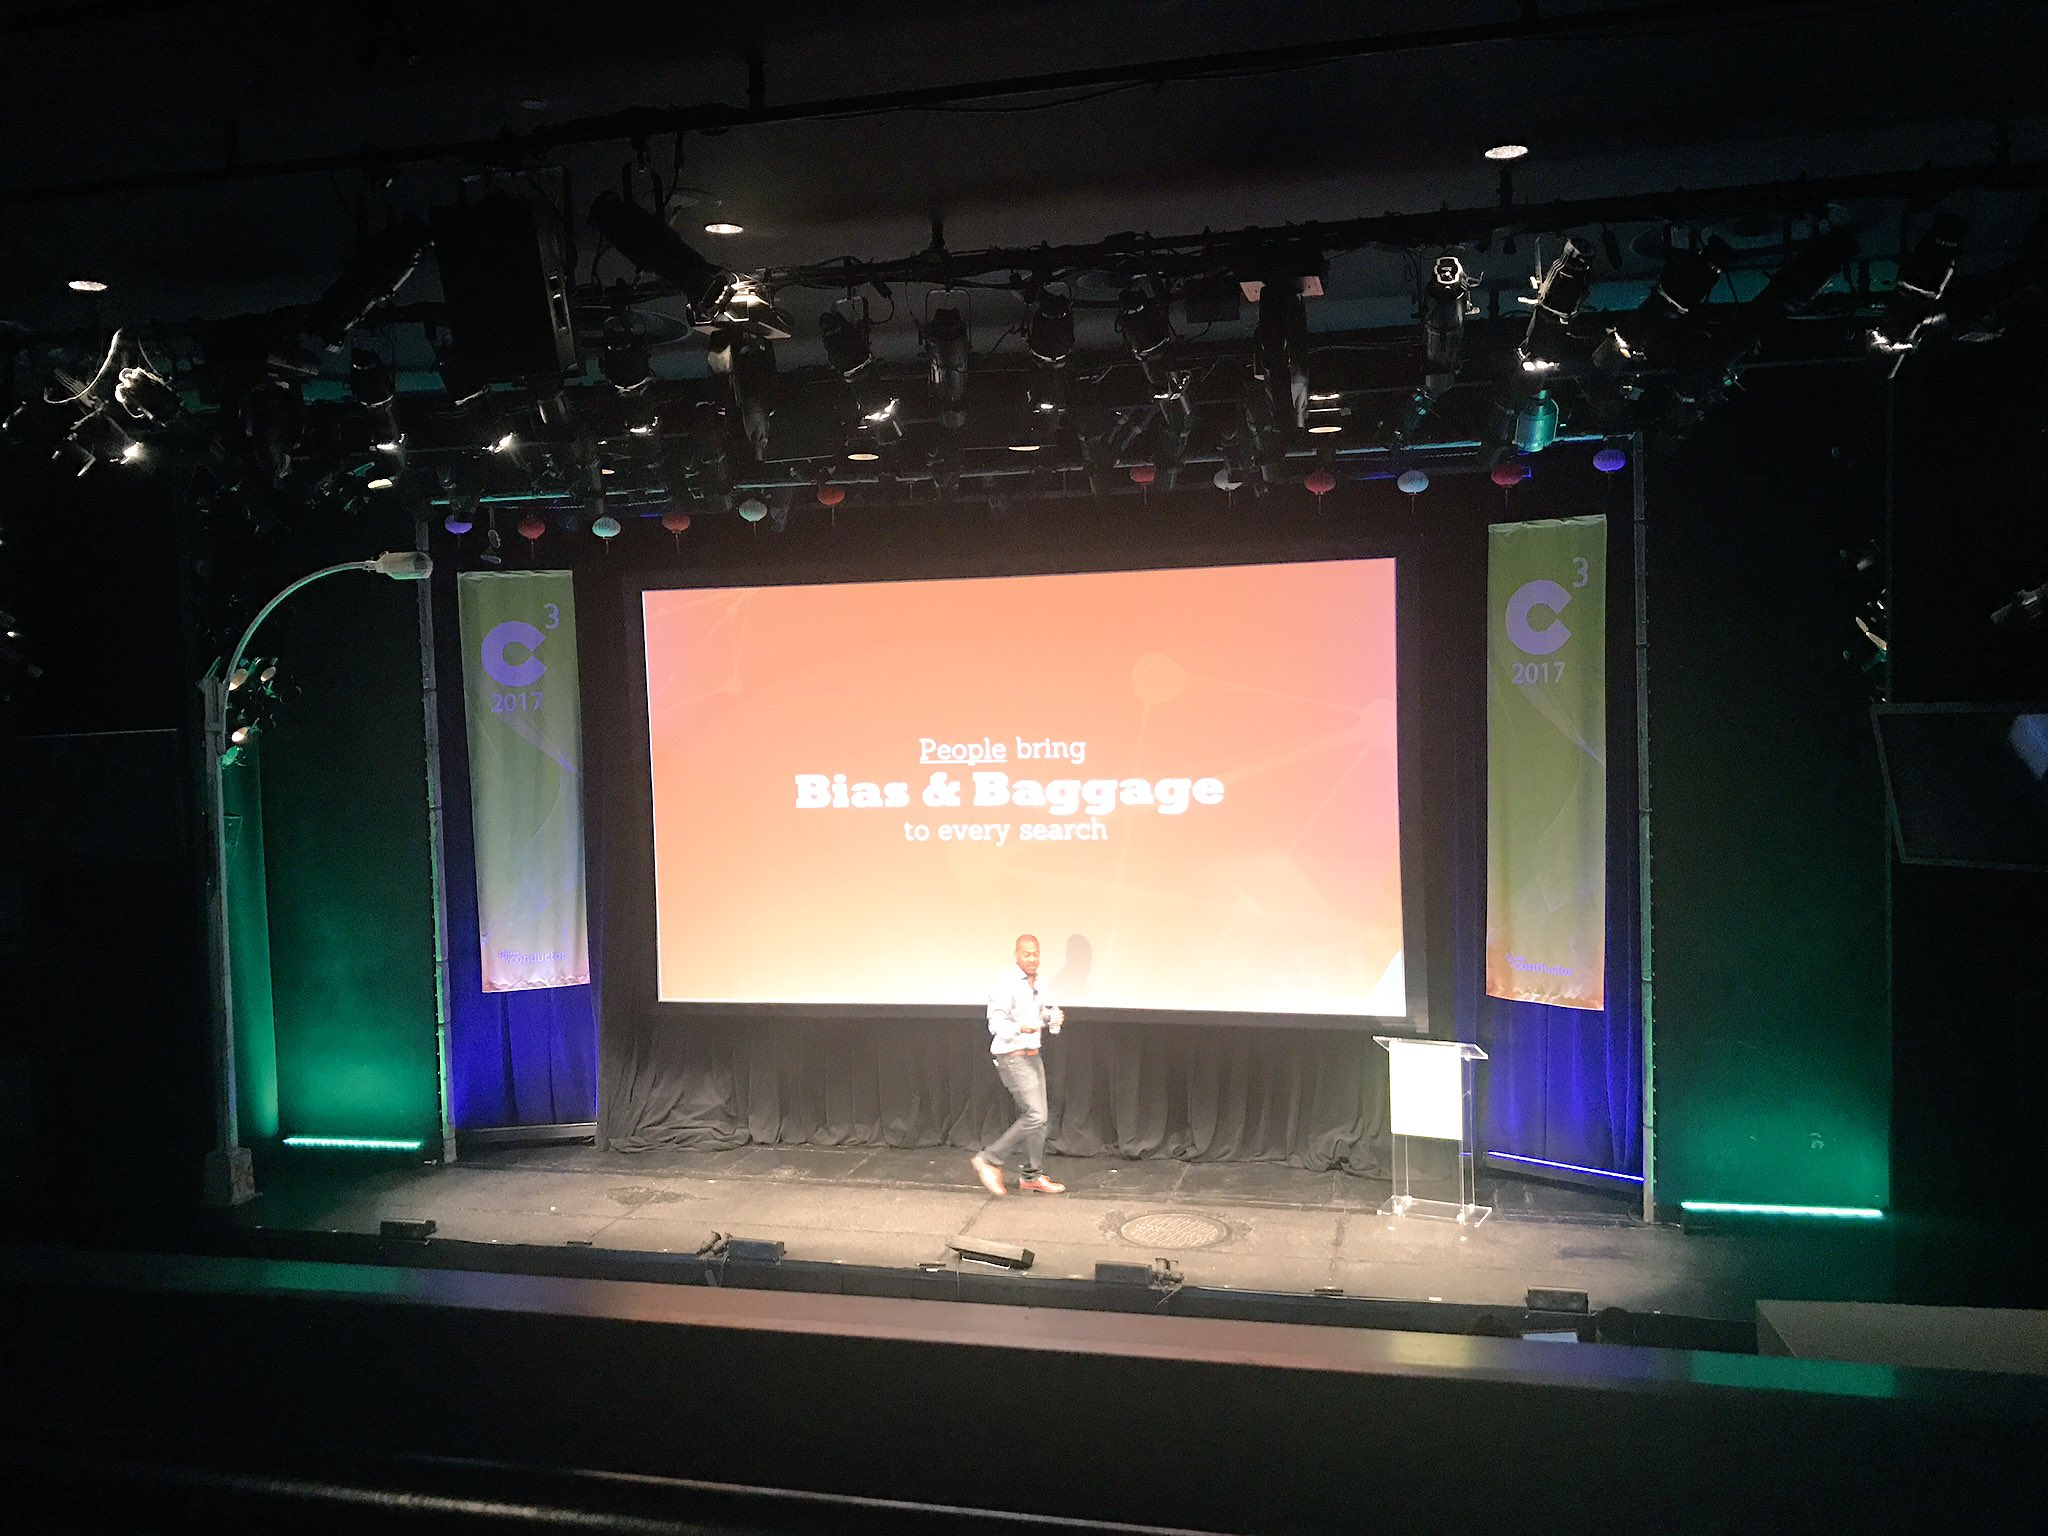 The same word can have different context or meaning. @wilreynolds #C3NY #GTFO https://t.co/tWNVlMRopt